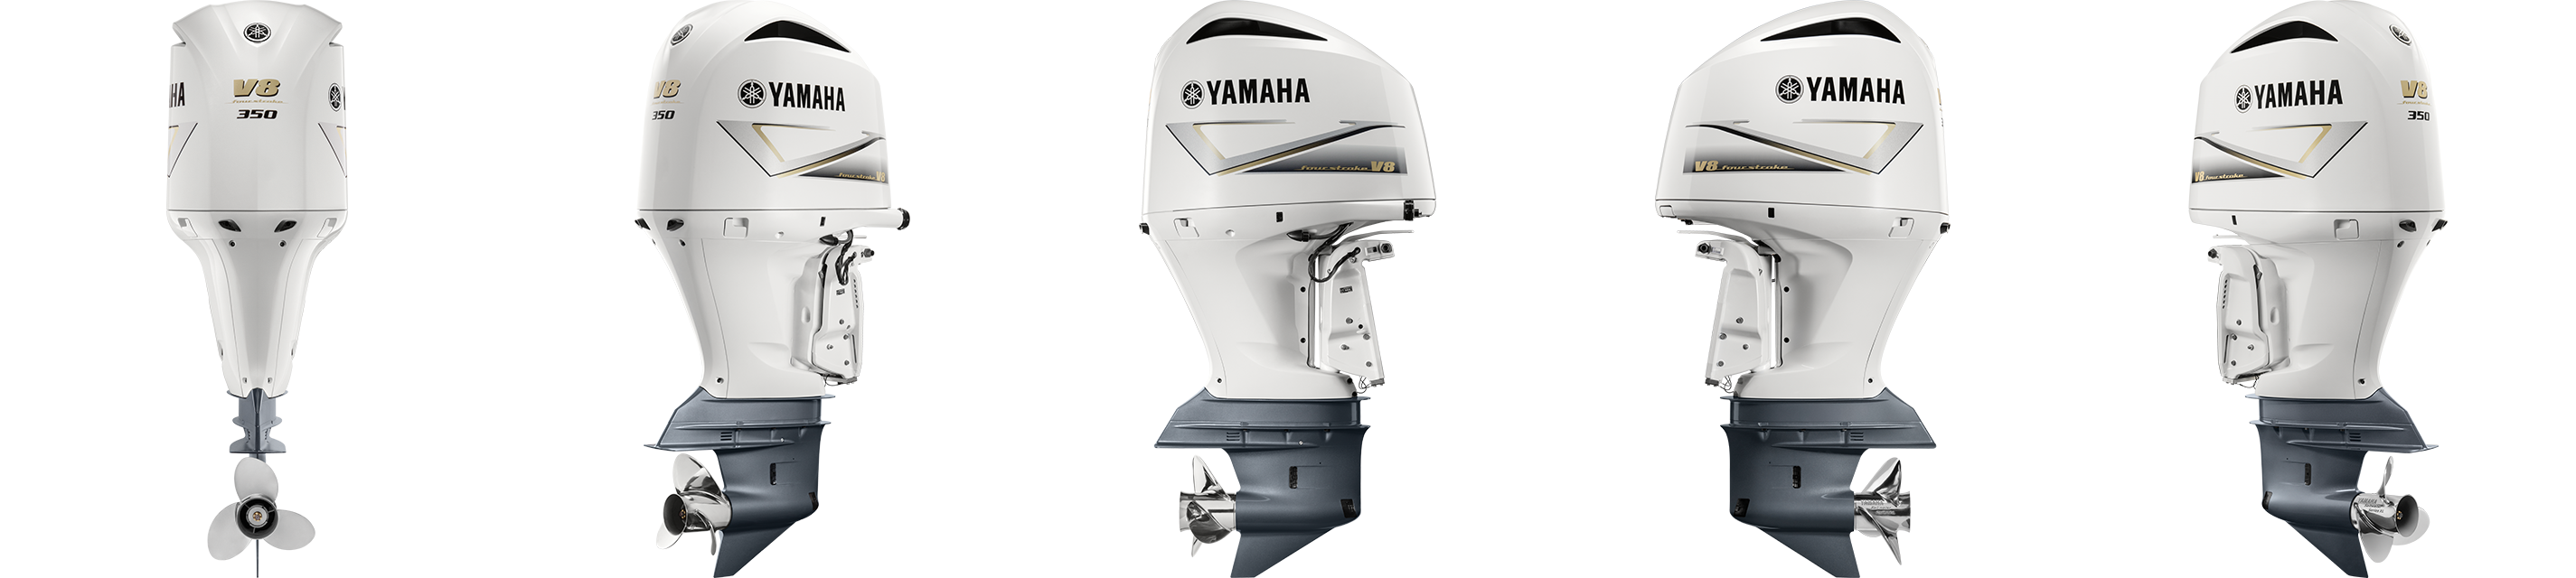 Outboards 350 Hp V8 53l Yamaha Outboard Wiring Color Code White Gray